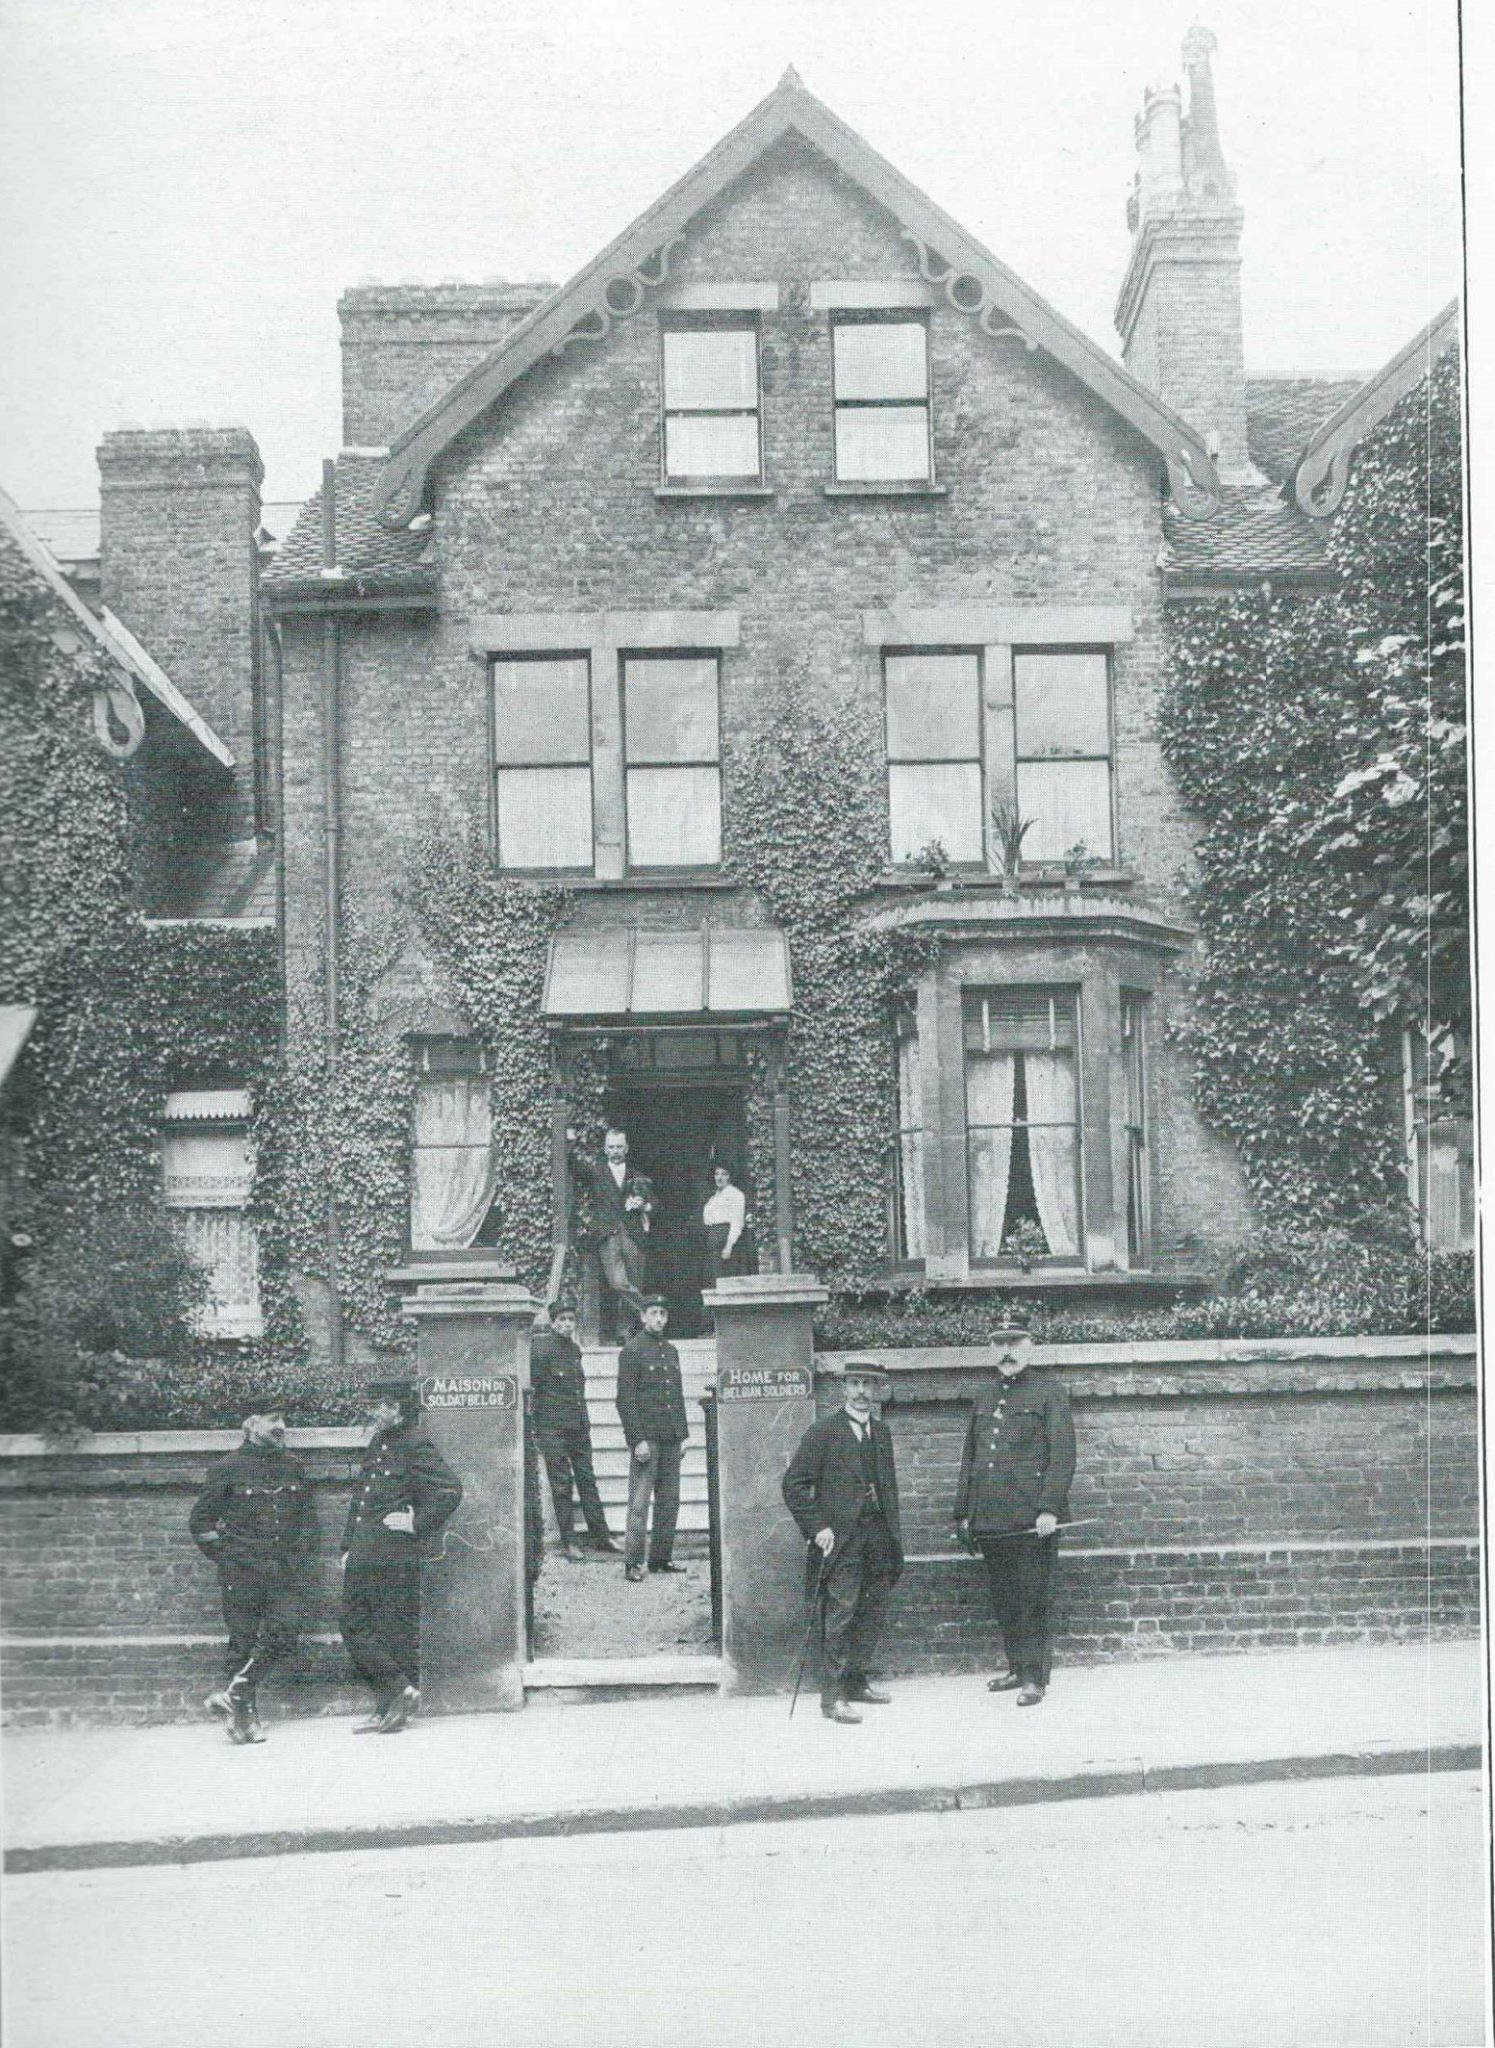 The Soldiers' House on Richmond Hill was set up by workers and managers of the Pelabon Munitions Factory in Twickenham as a patriotic effort to provide for Belgian soldiers on leave